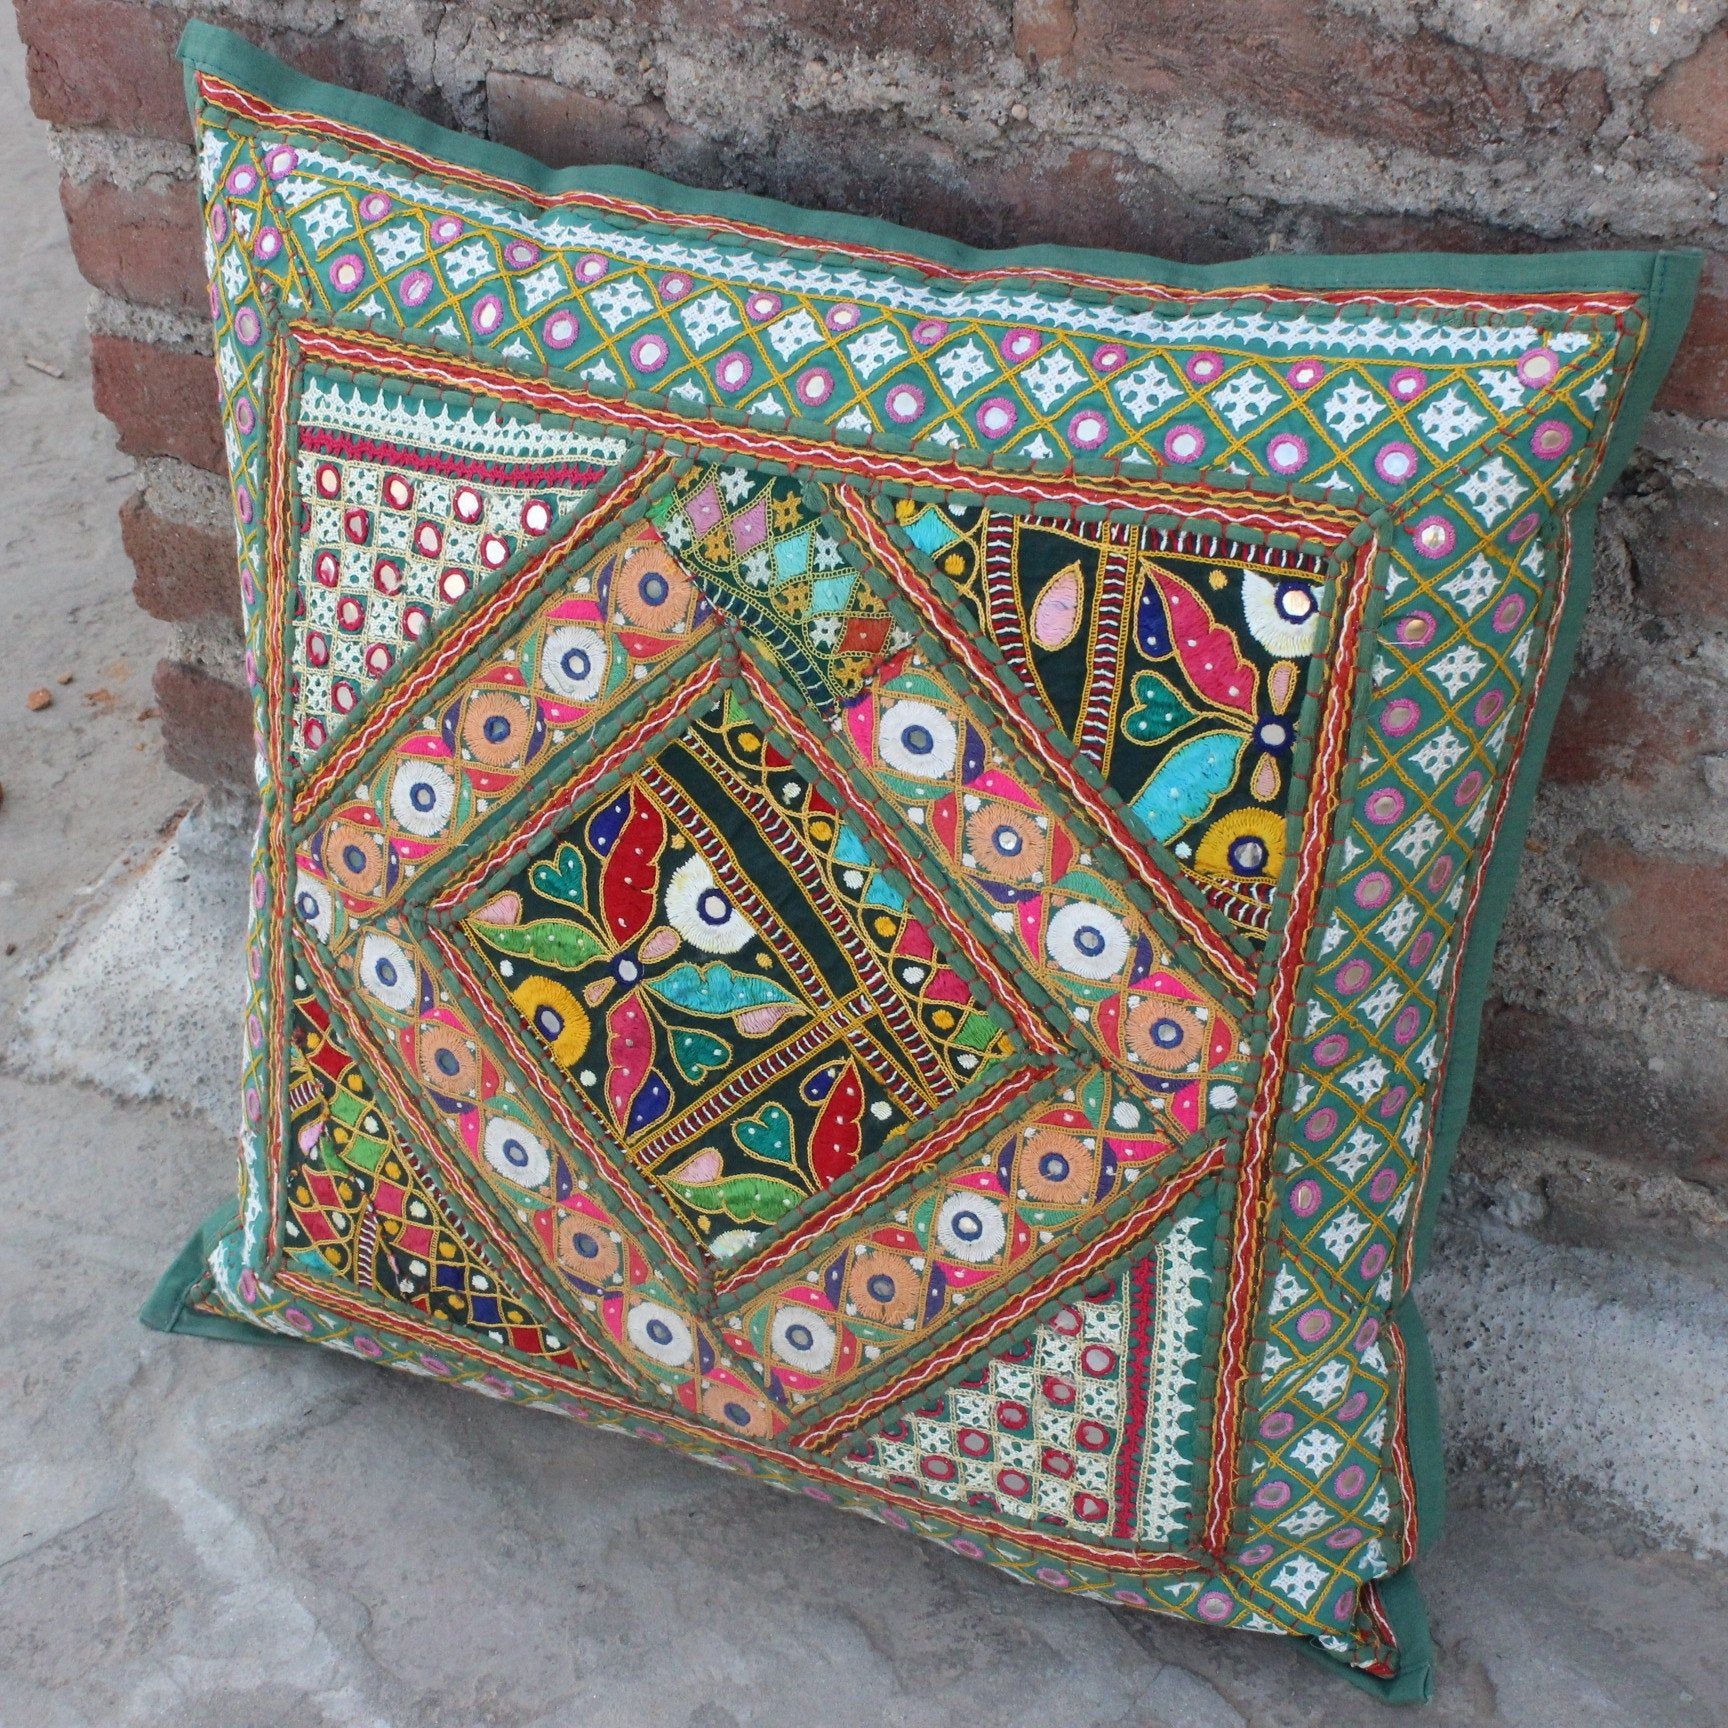 decorative boho accent unique pretty patchwork 16x16.htm 24 in green bohemian pillow mirrored hand embroidered indian  pillow mirrored hand embroidered